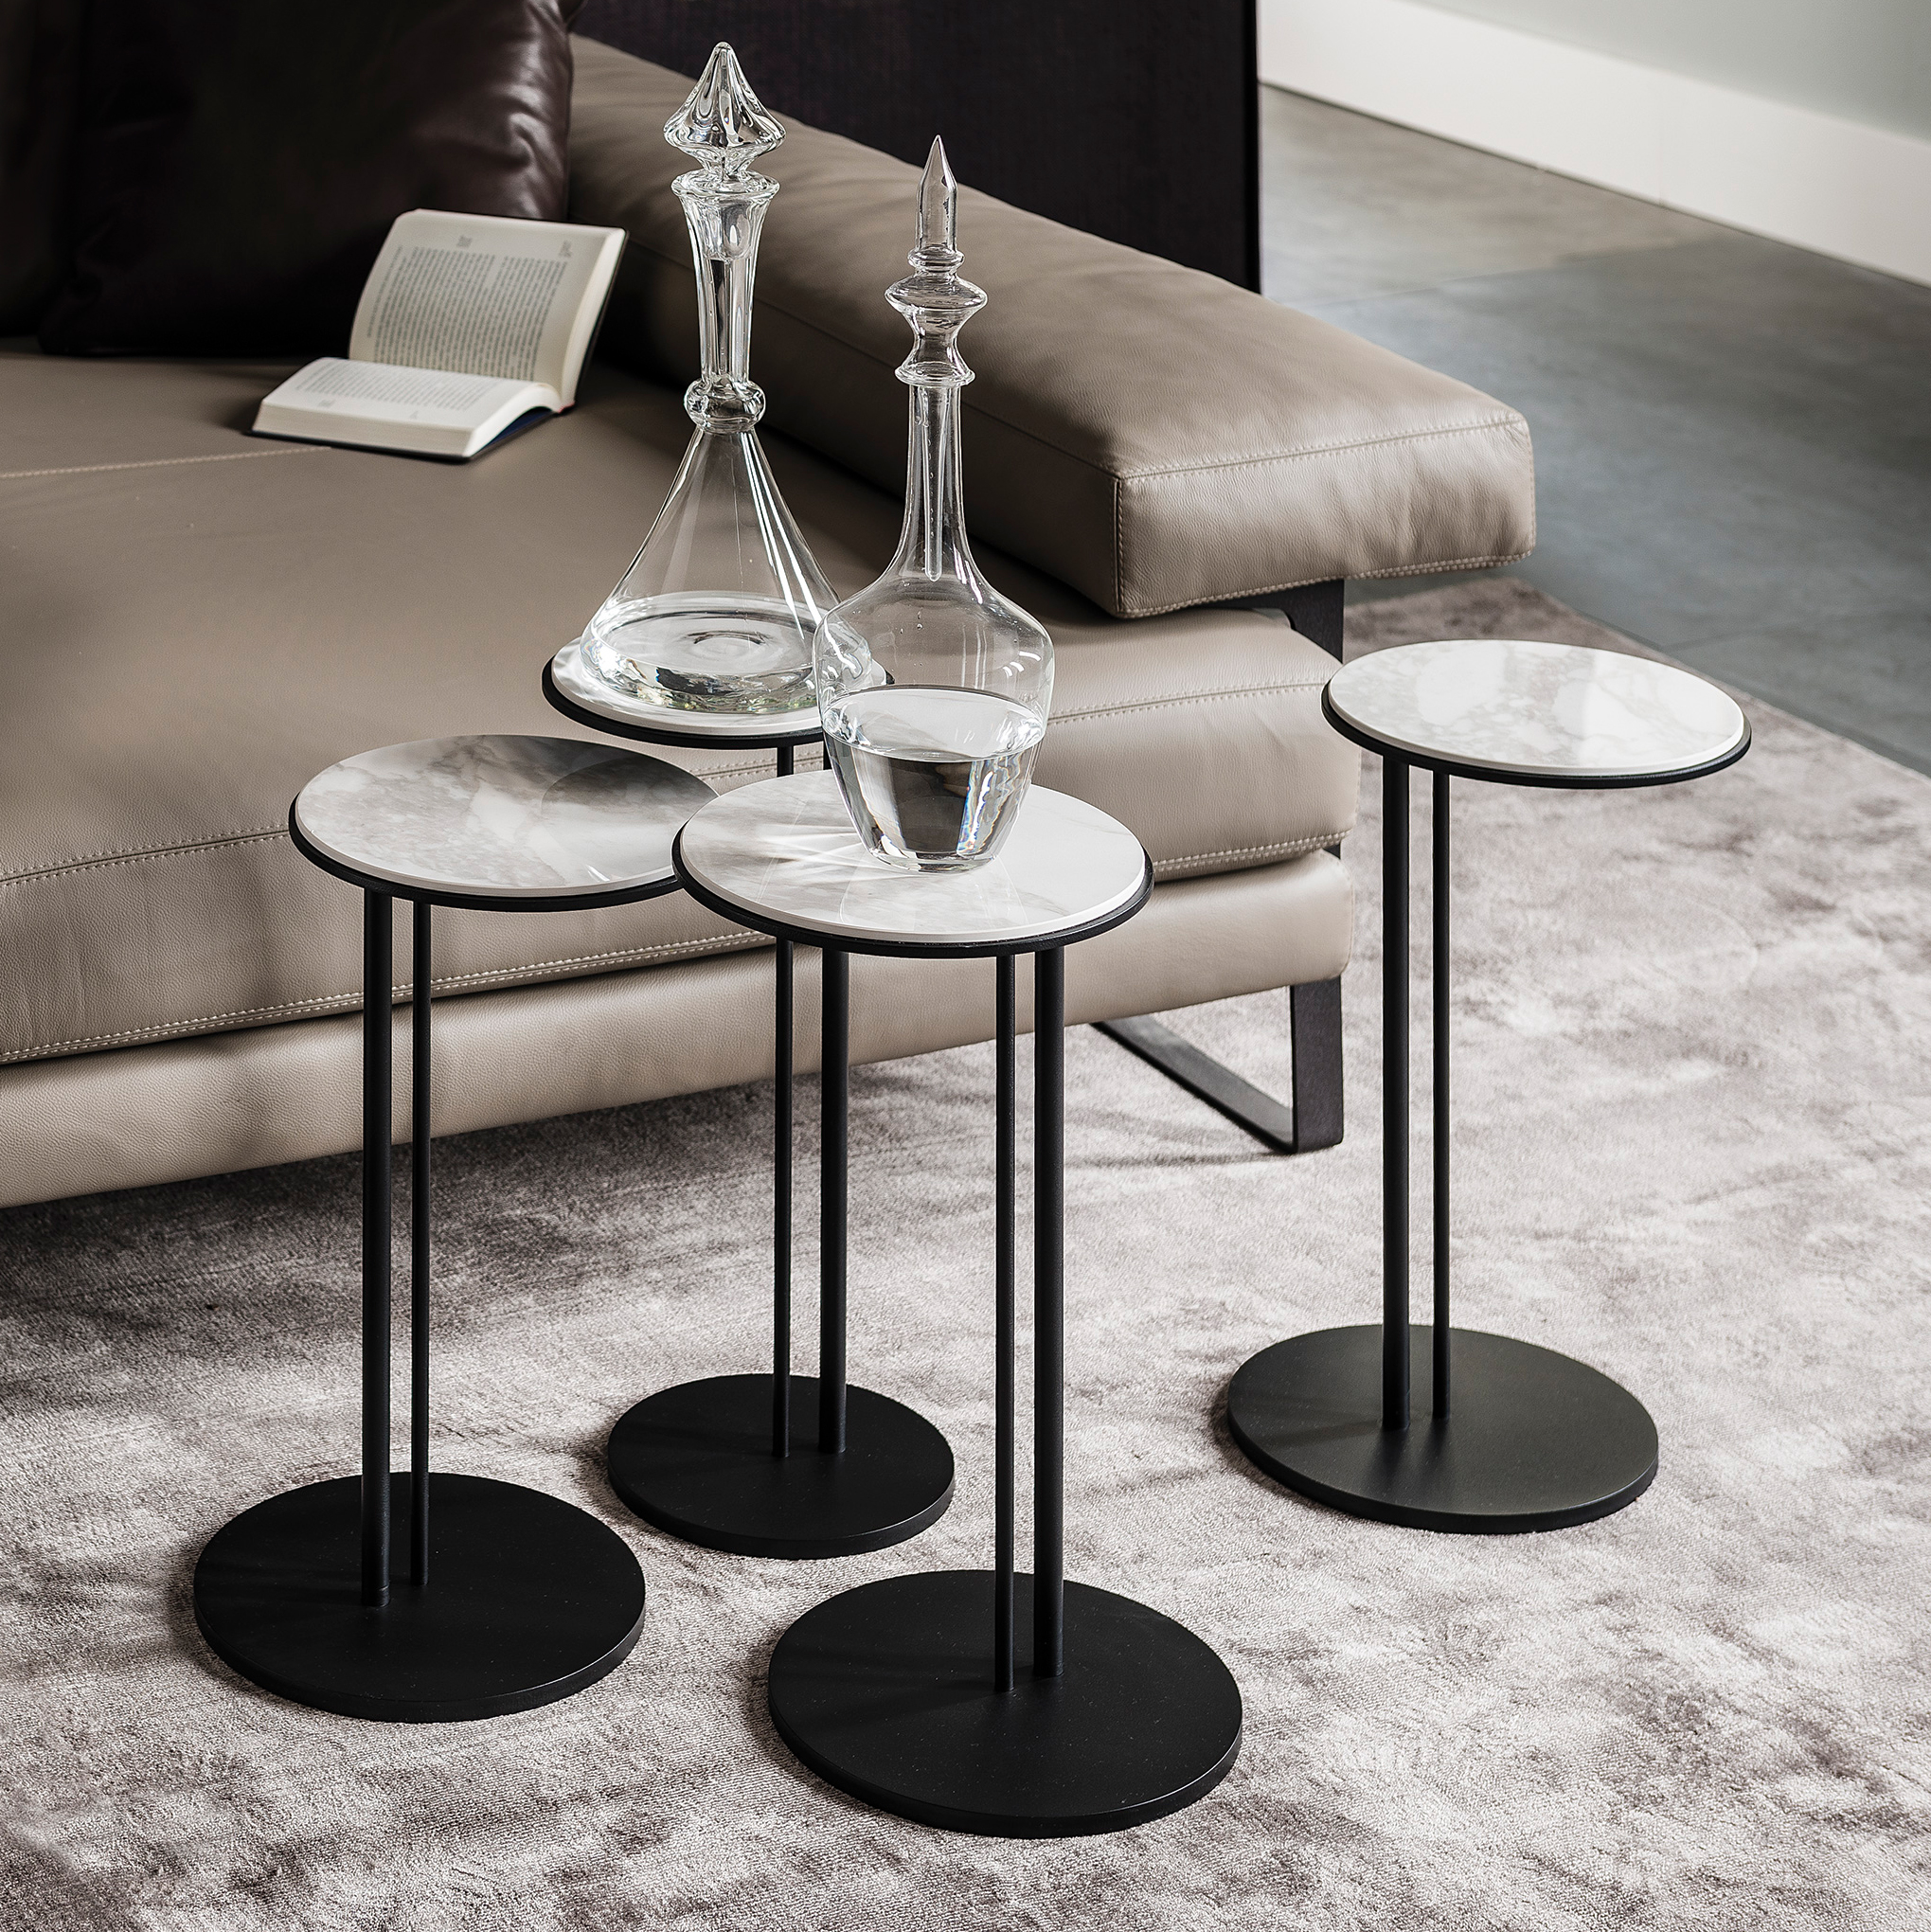 Luxury Italian Sting Side Table Italian Designer & Luxury